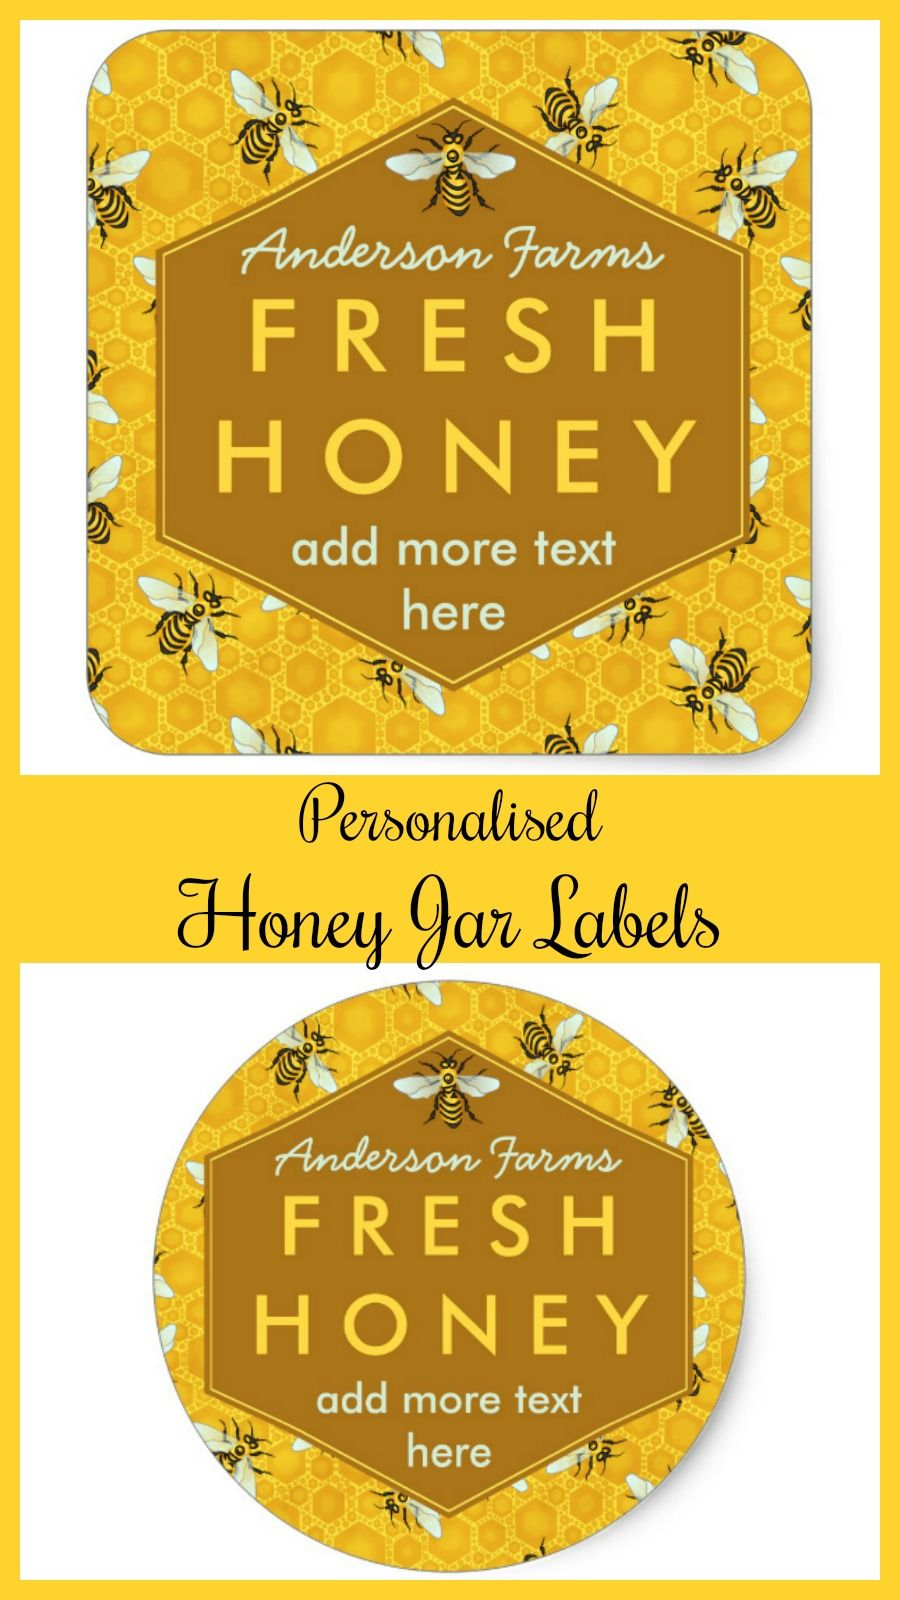 Personalised honey jar label bees and honeycomb ideal for small